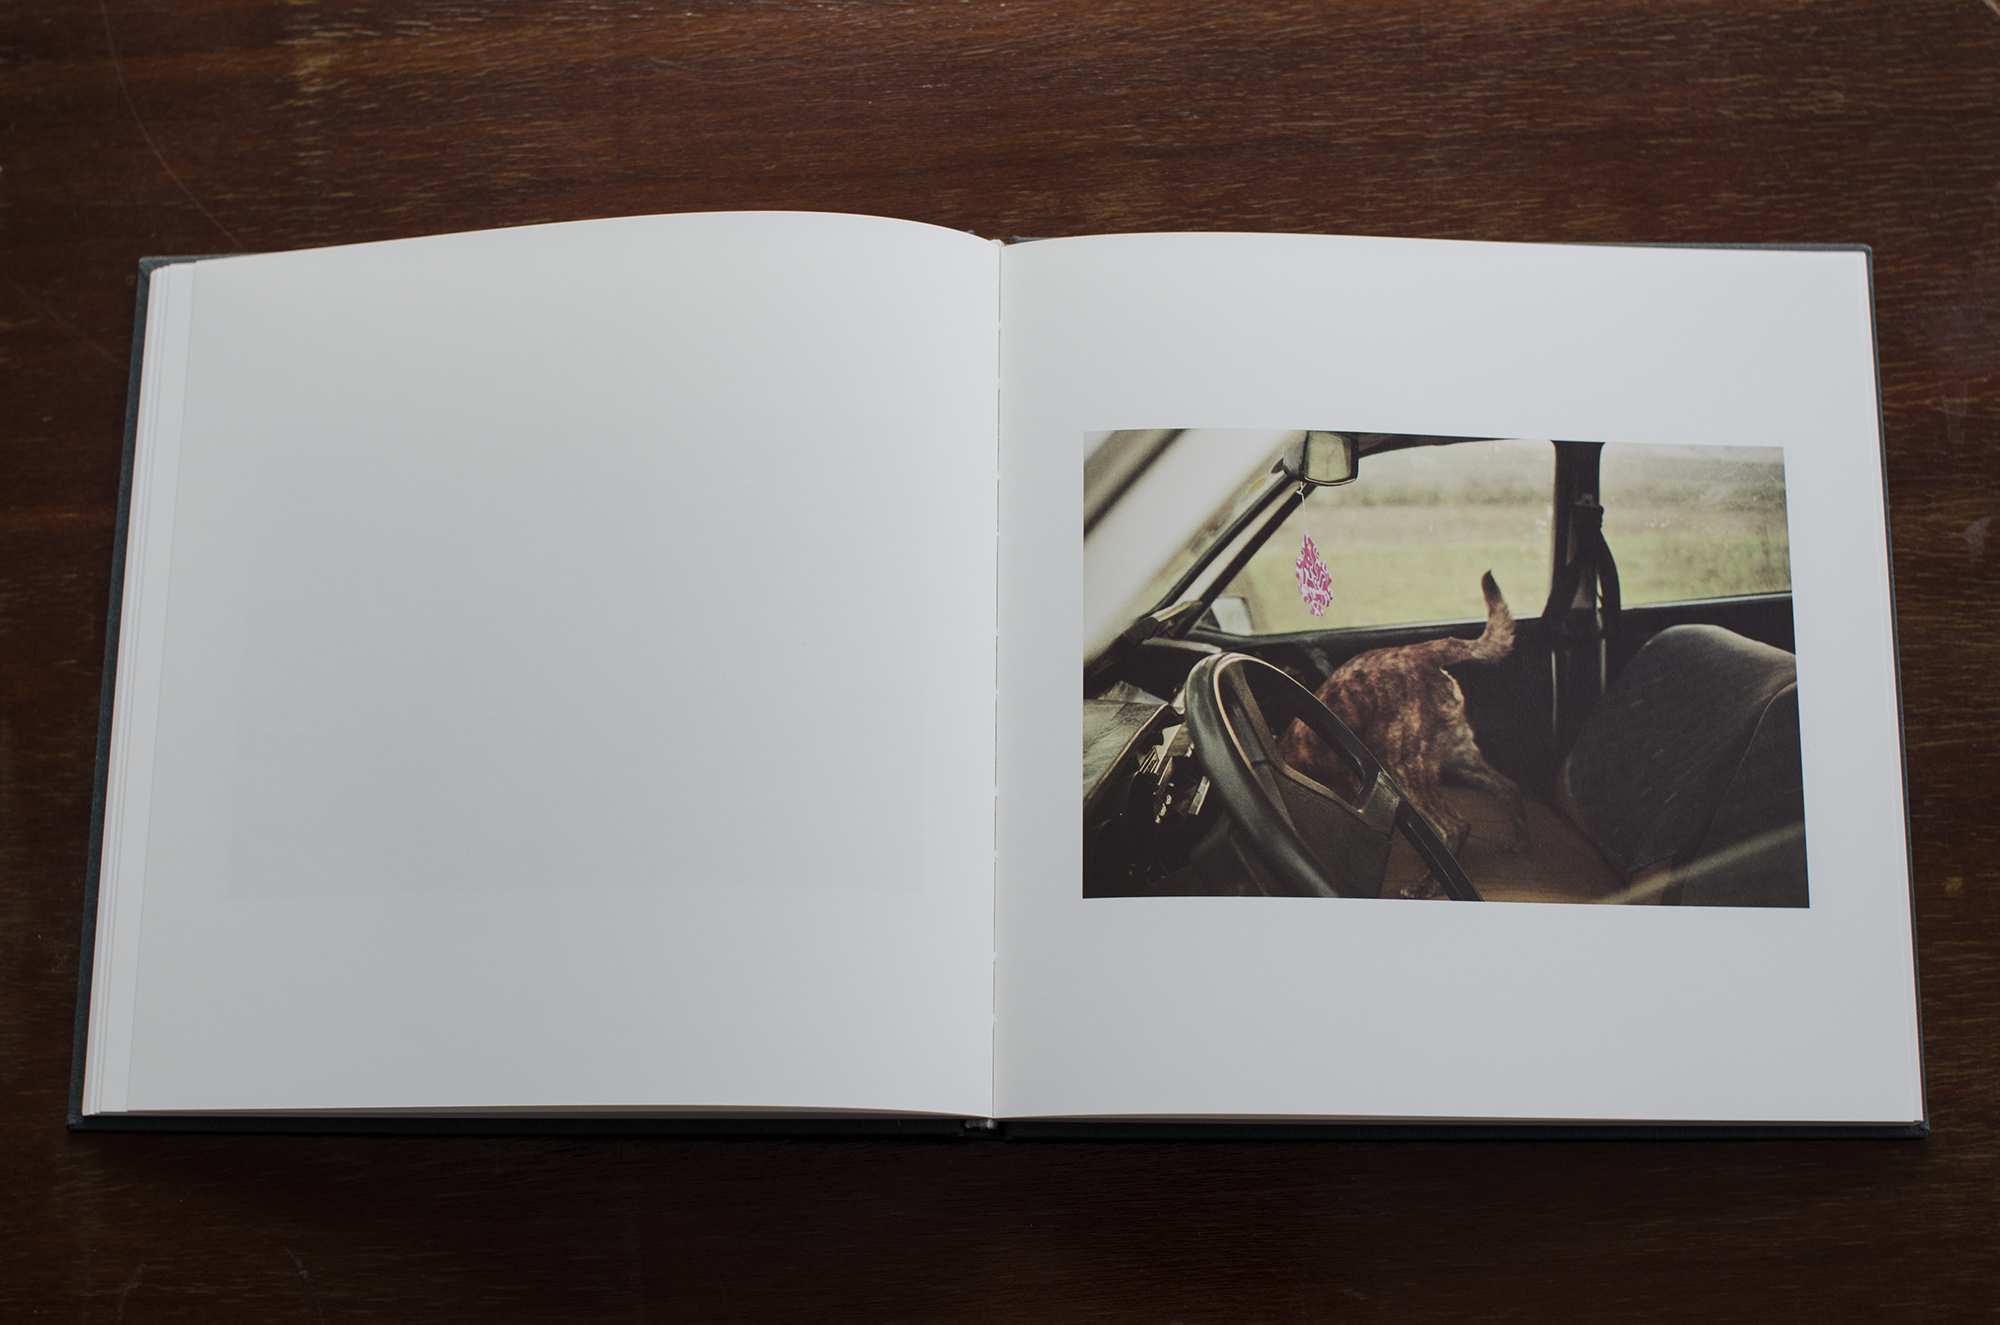 Ovidiu+Gordan+Familiar+Place+photobook_07.jpg